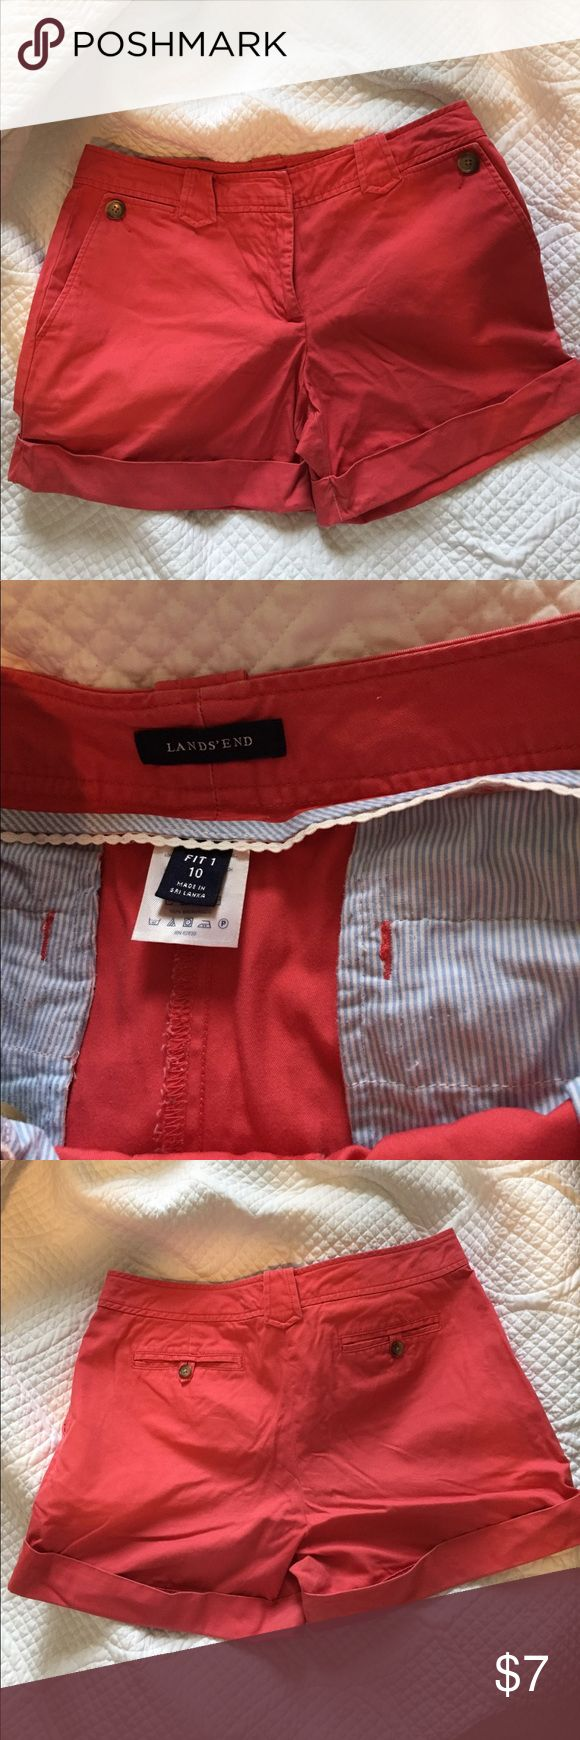 25 Best Ideas About Nantucket Red On Pinterest Gq Mens